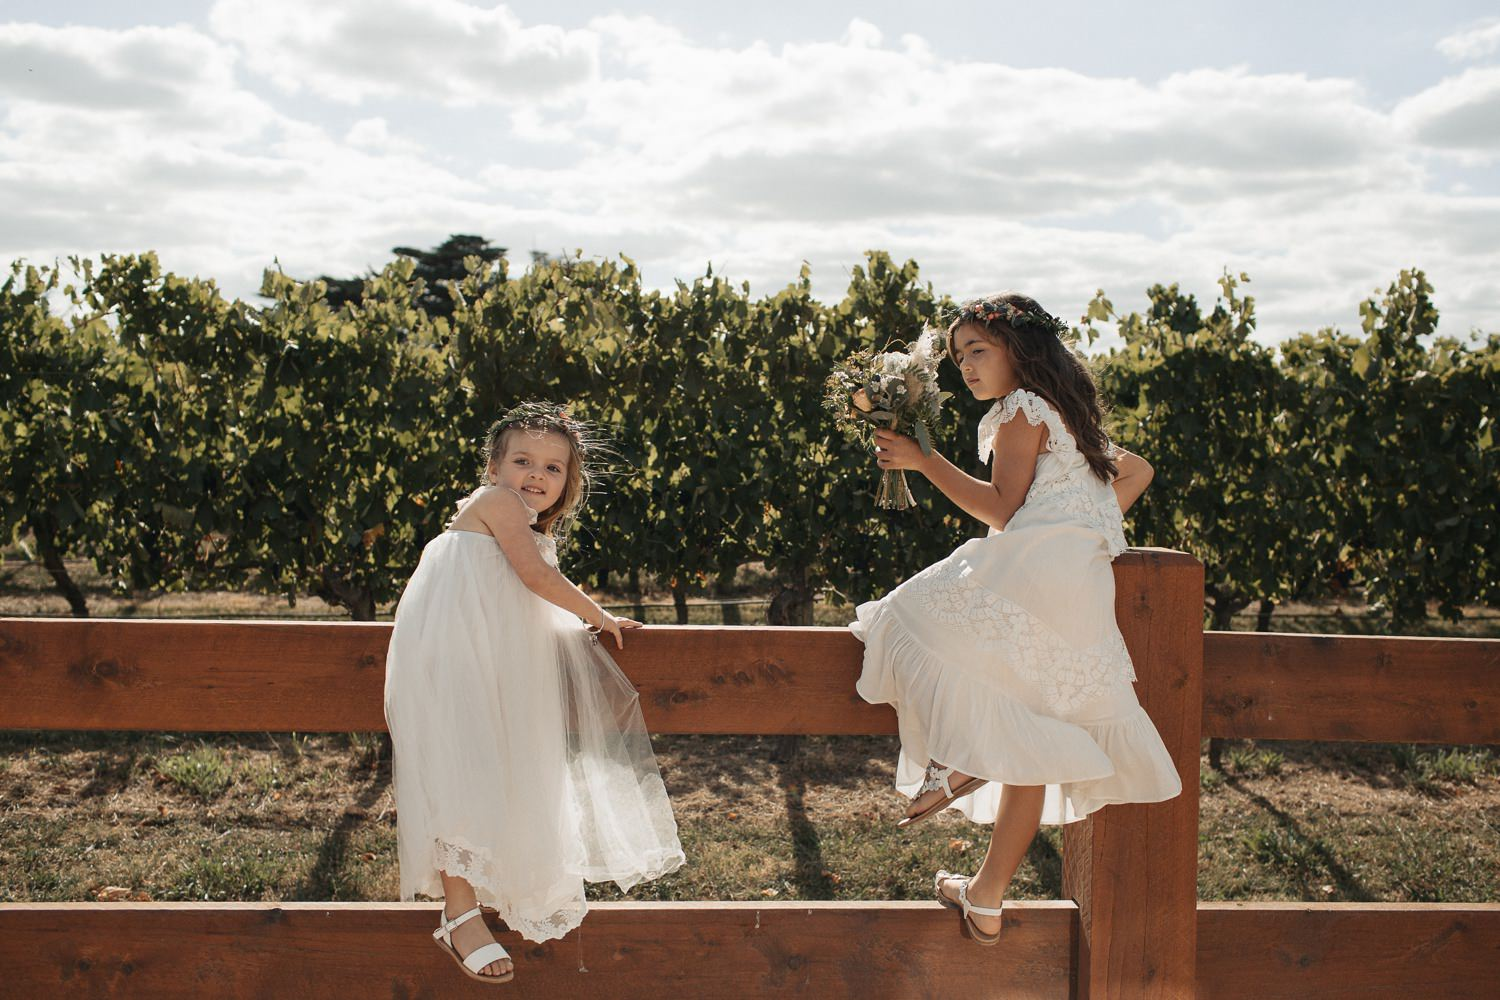 zonzo-estate-yarra-valley-wedding-photographer_0046.jpg